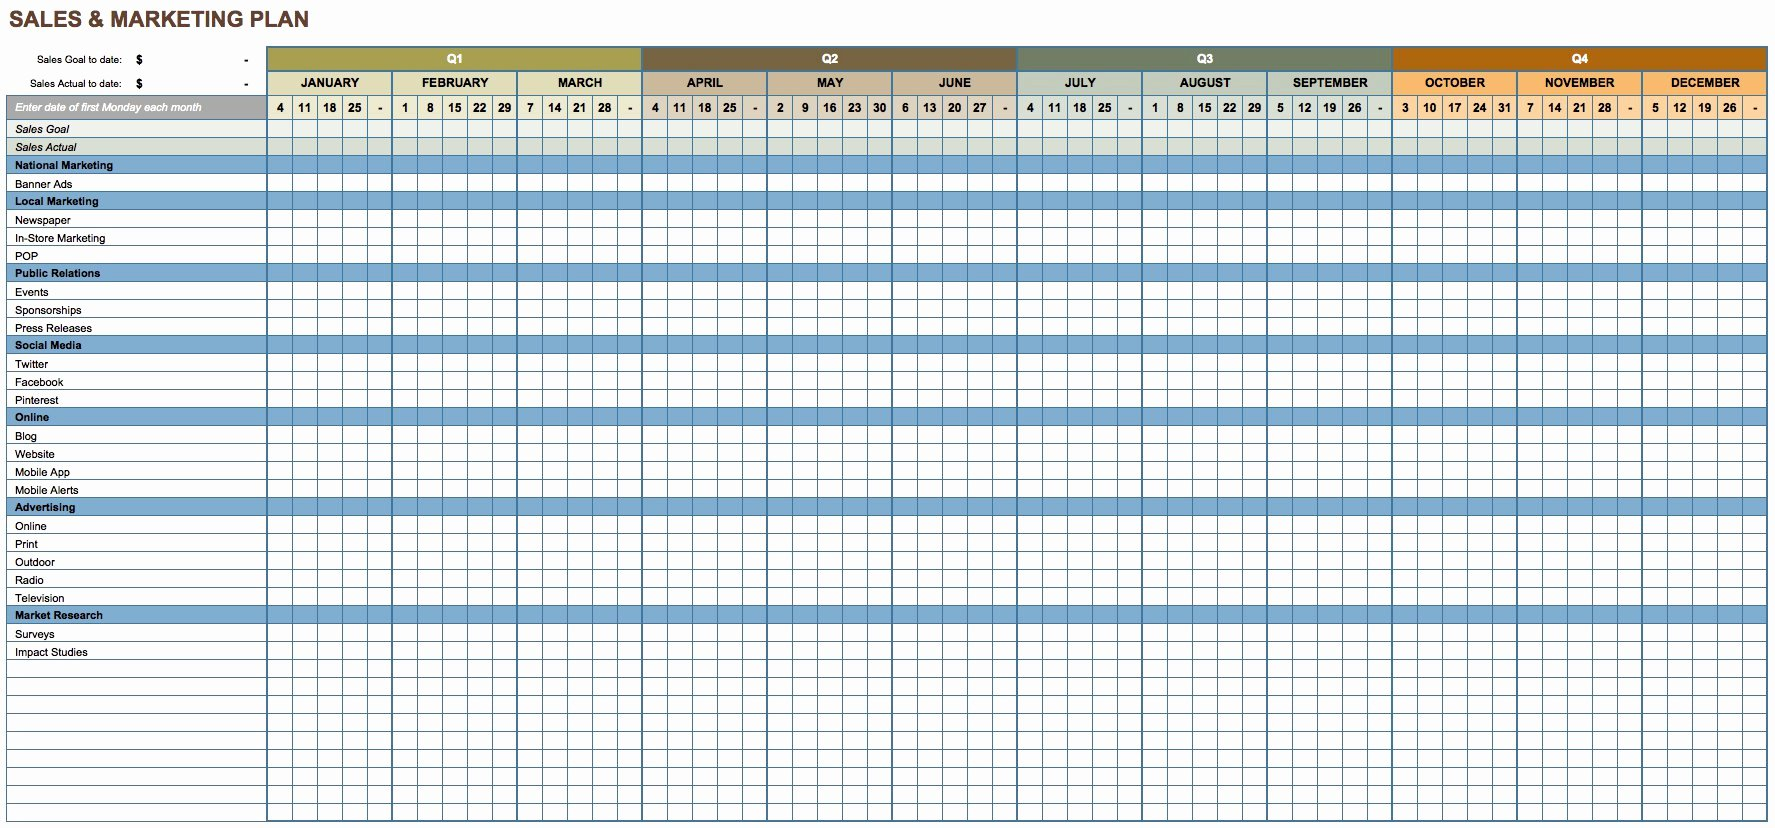 Excel Marketing Plan Template Luxury Free Marketing Plan Templates for Excel Smartsheet